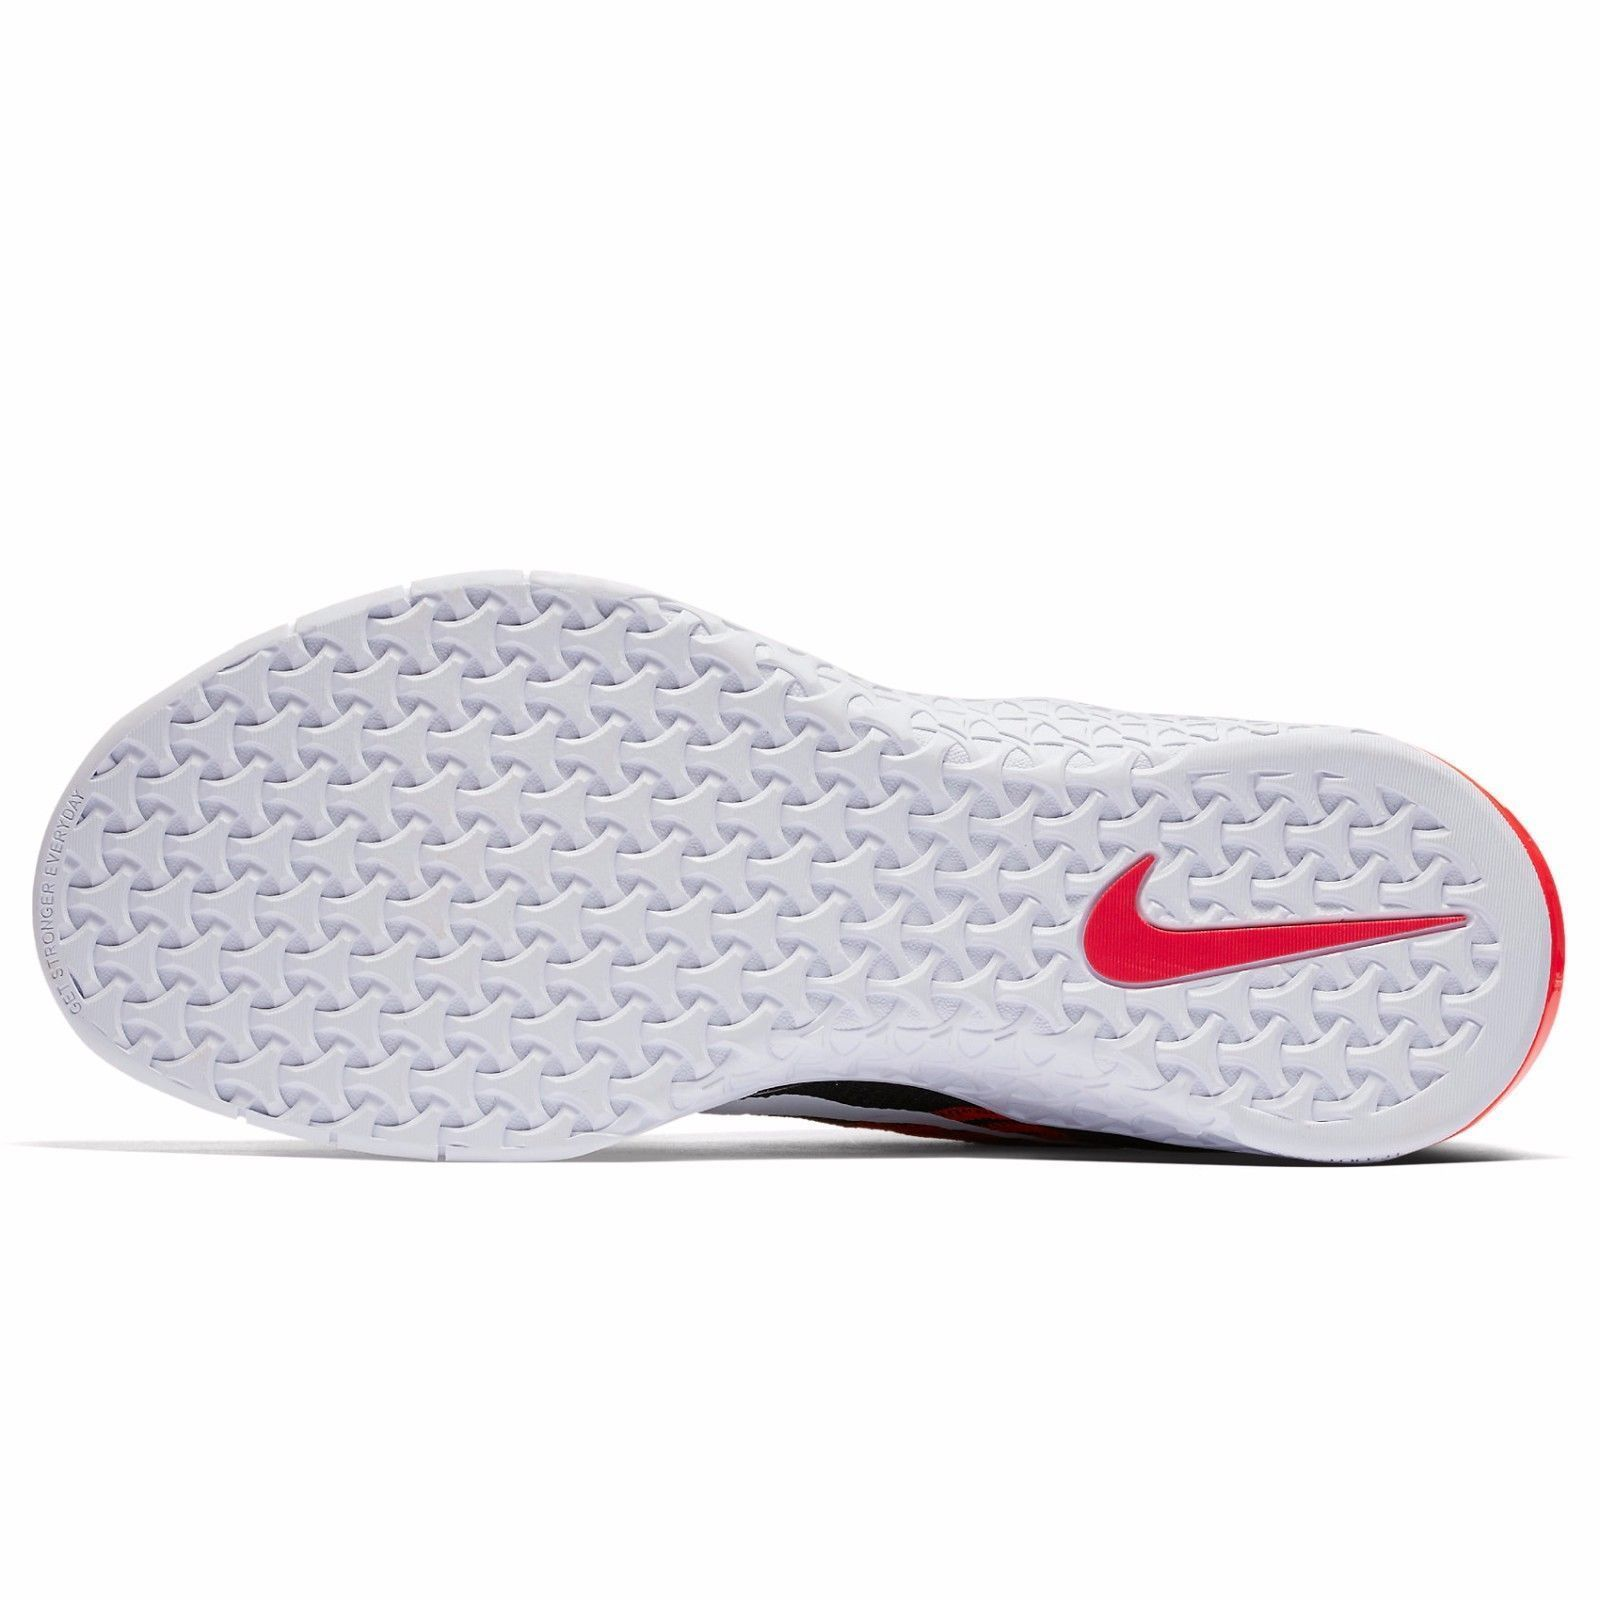 d3ed69e19ad2 NIKE METCON DSX FLYKNIT CROSSFIT WEIGHTLIFTING SIZE 11.5 NEW W  BOX (852930-